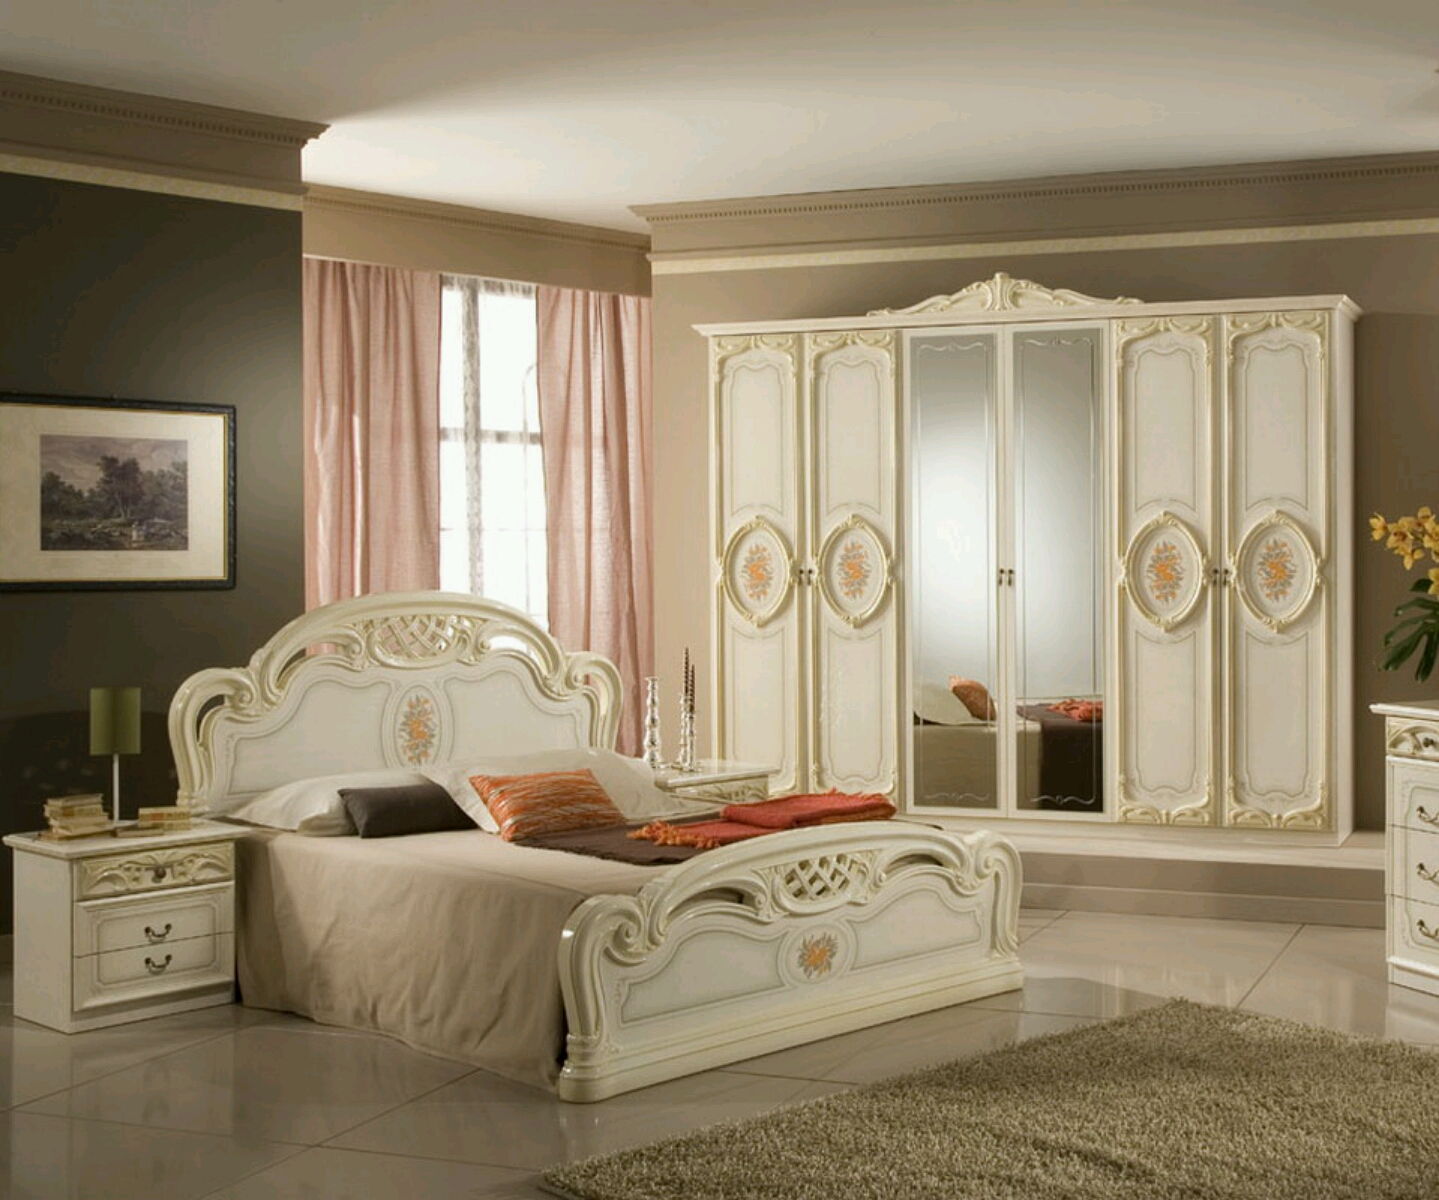 Modern luxury bedroom furniture designs ideas vintage romantic home - Bedroom furniture design ...